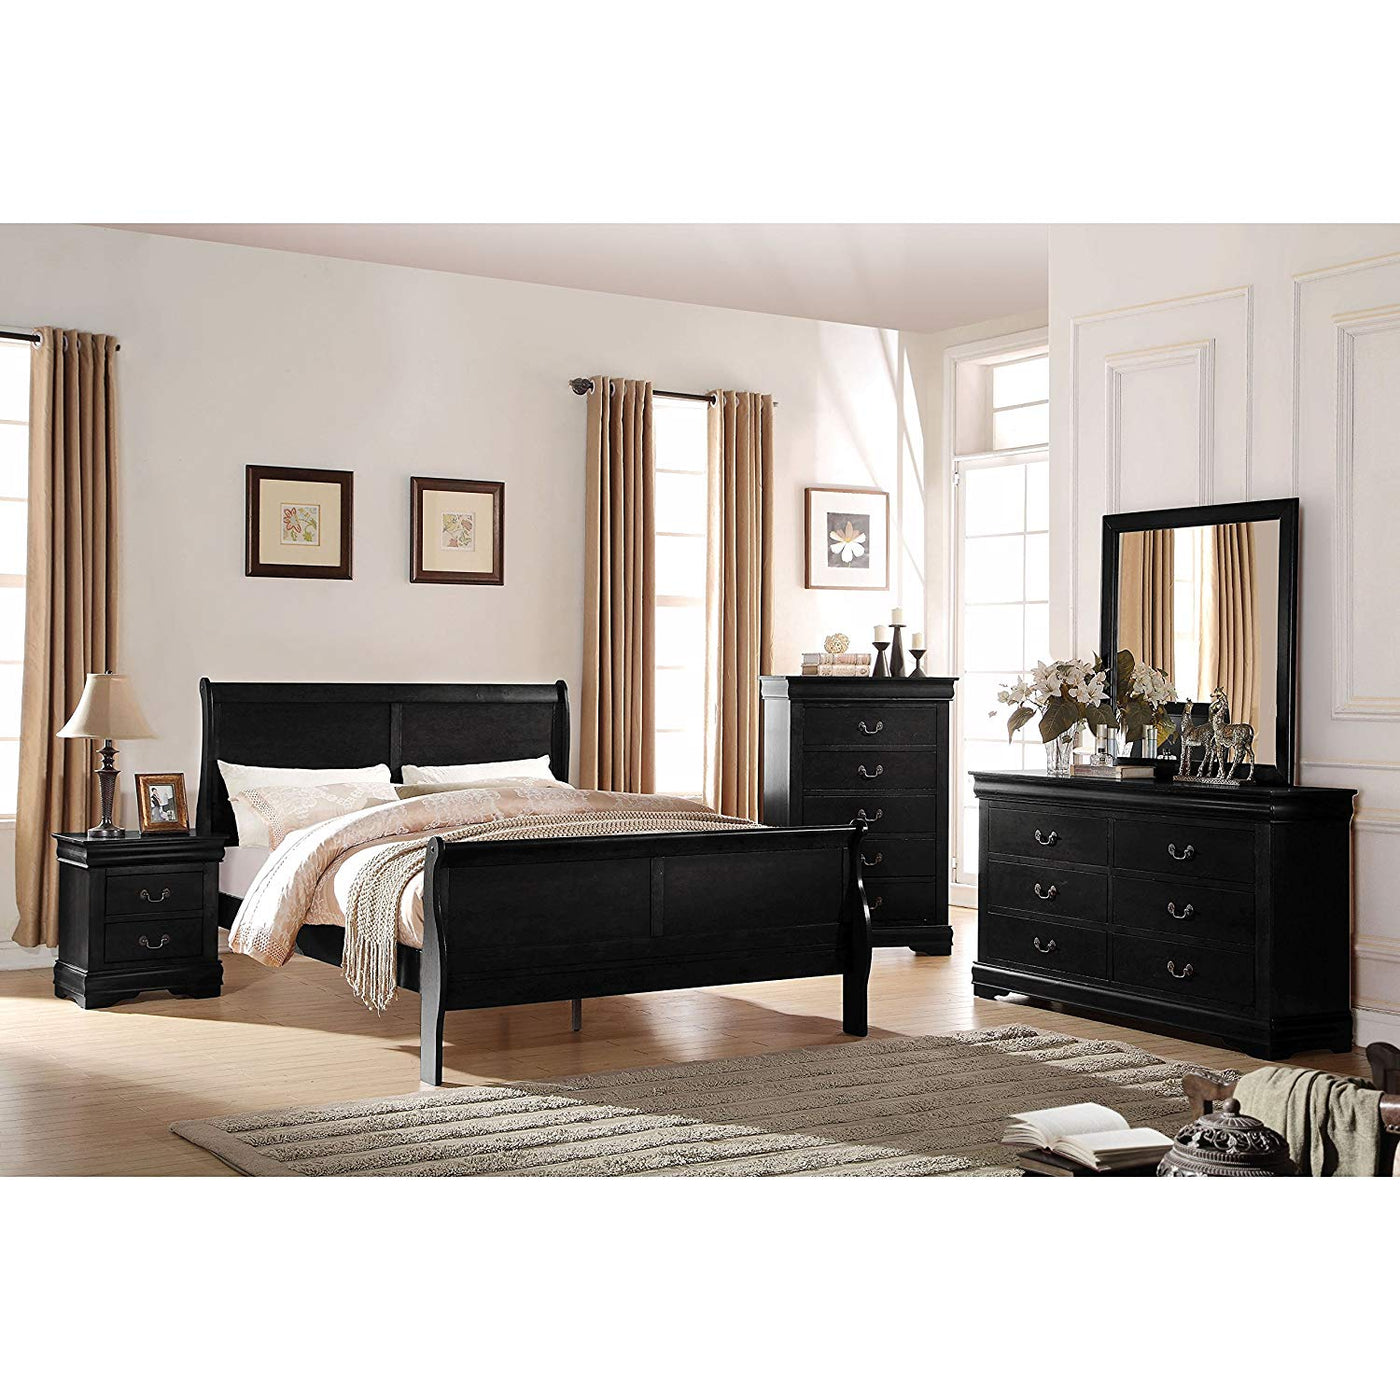 Louis Philippe Black Bedroom Set Available In King And Queen Furniture 4 Less Canada